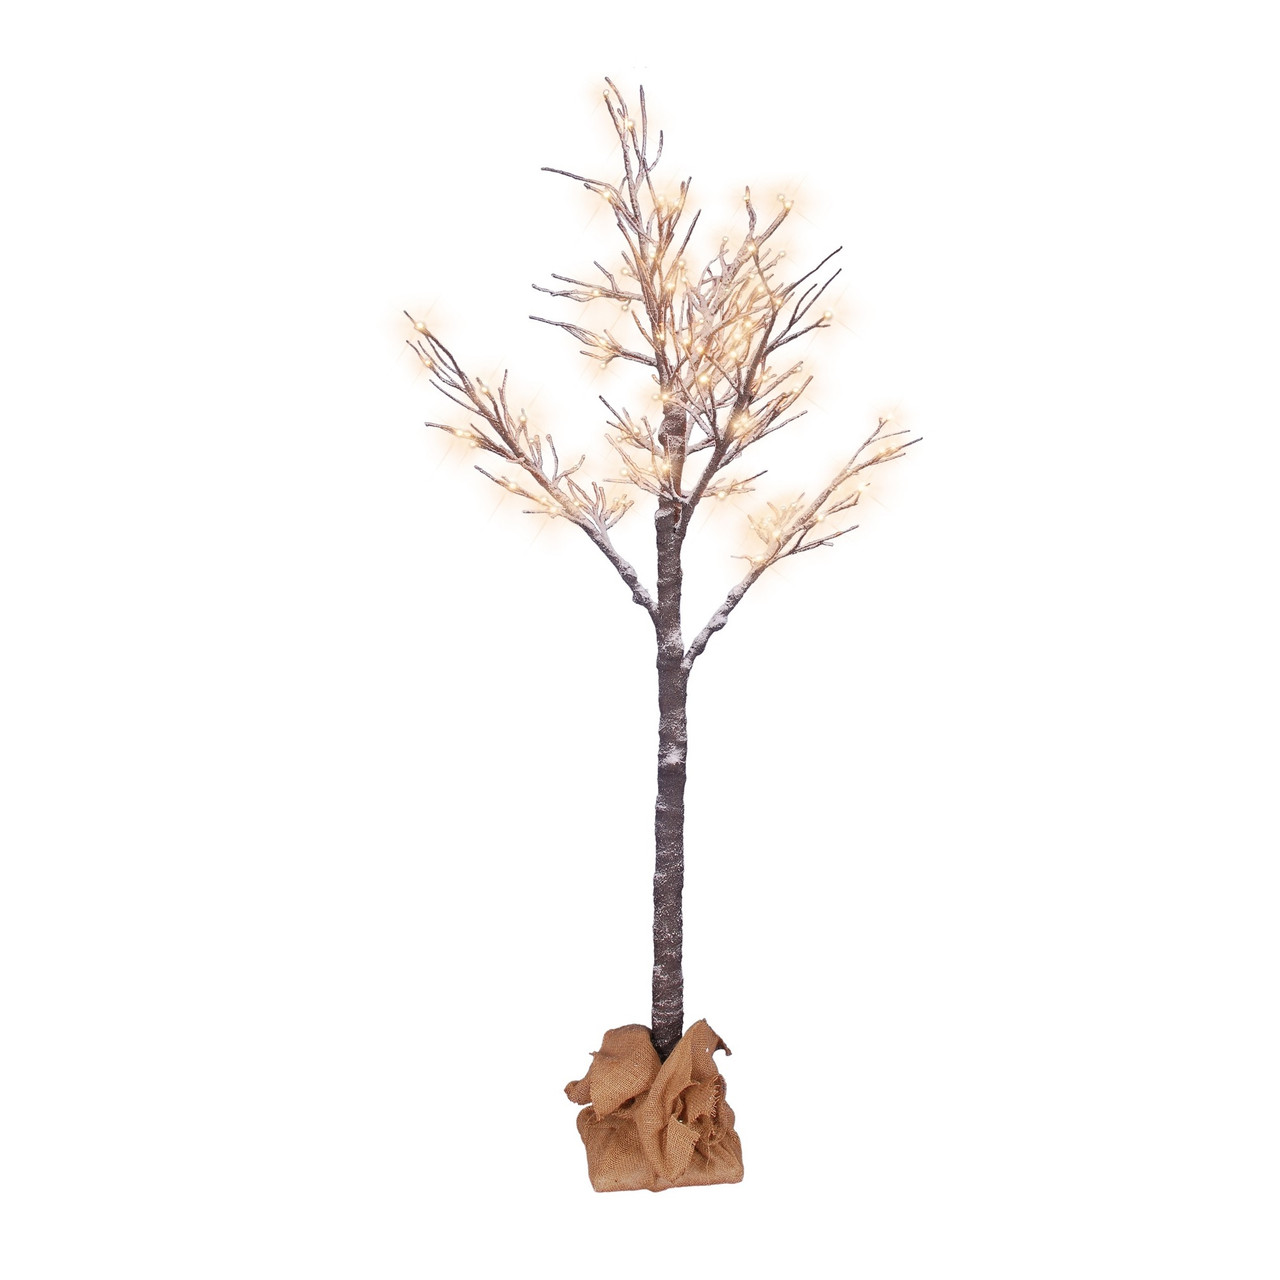 Pre Lit Christmas Twig Tree: 6' Pre-Lit Full Lighted Flocked Christmas Twig Tree